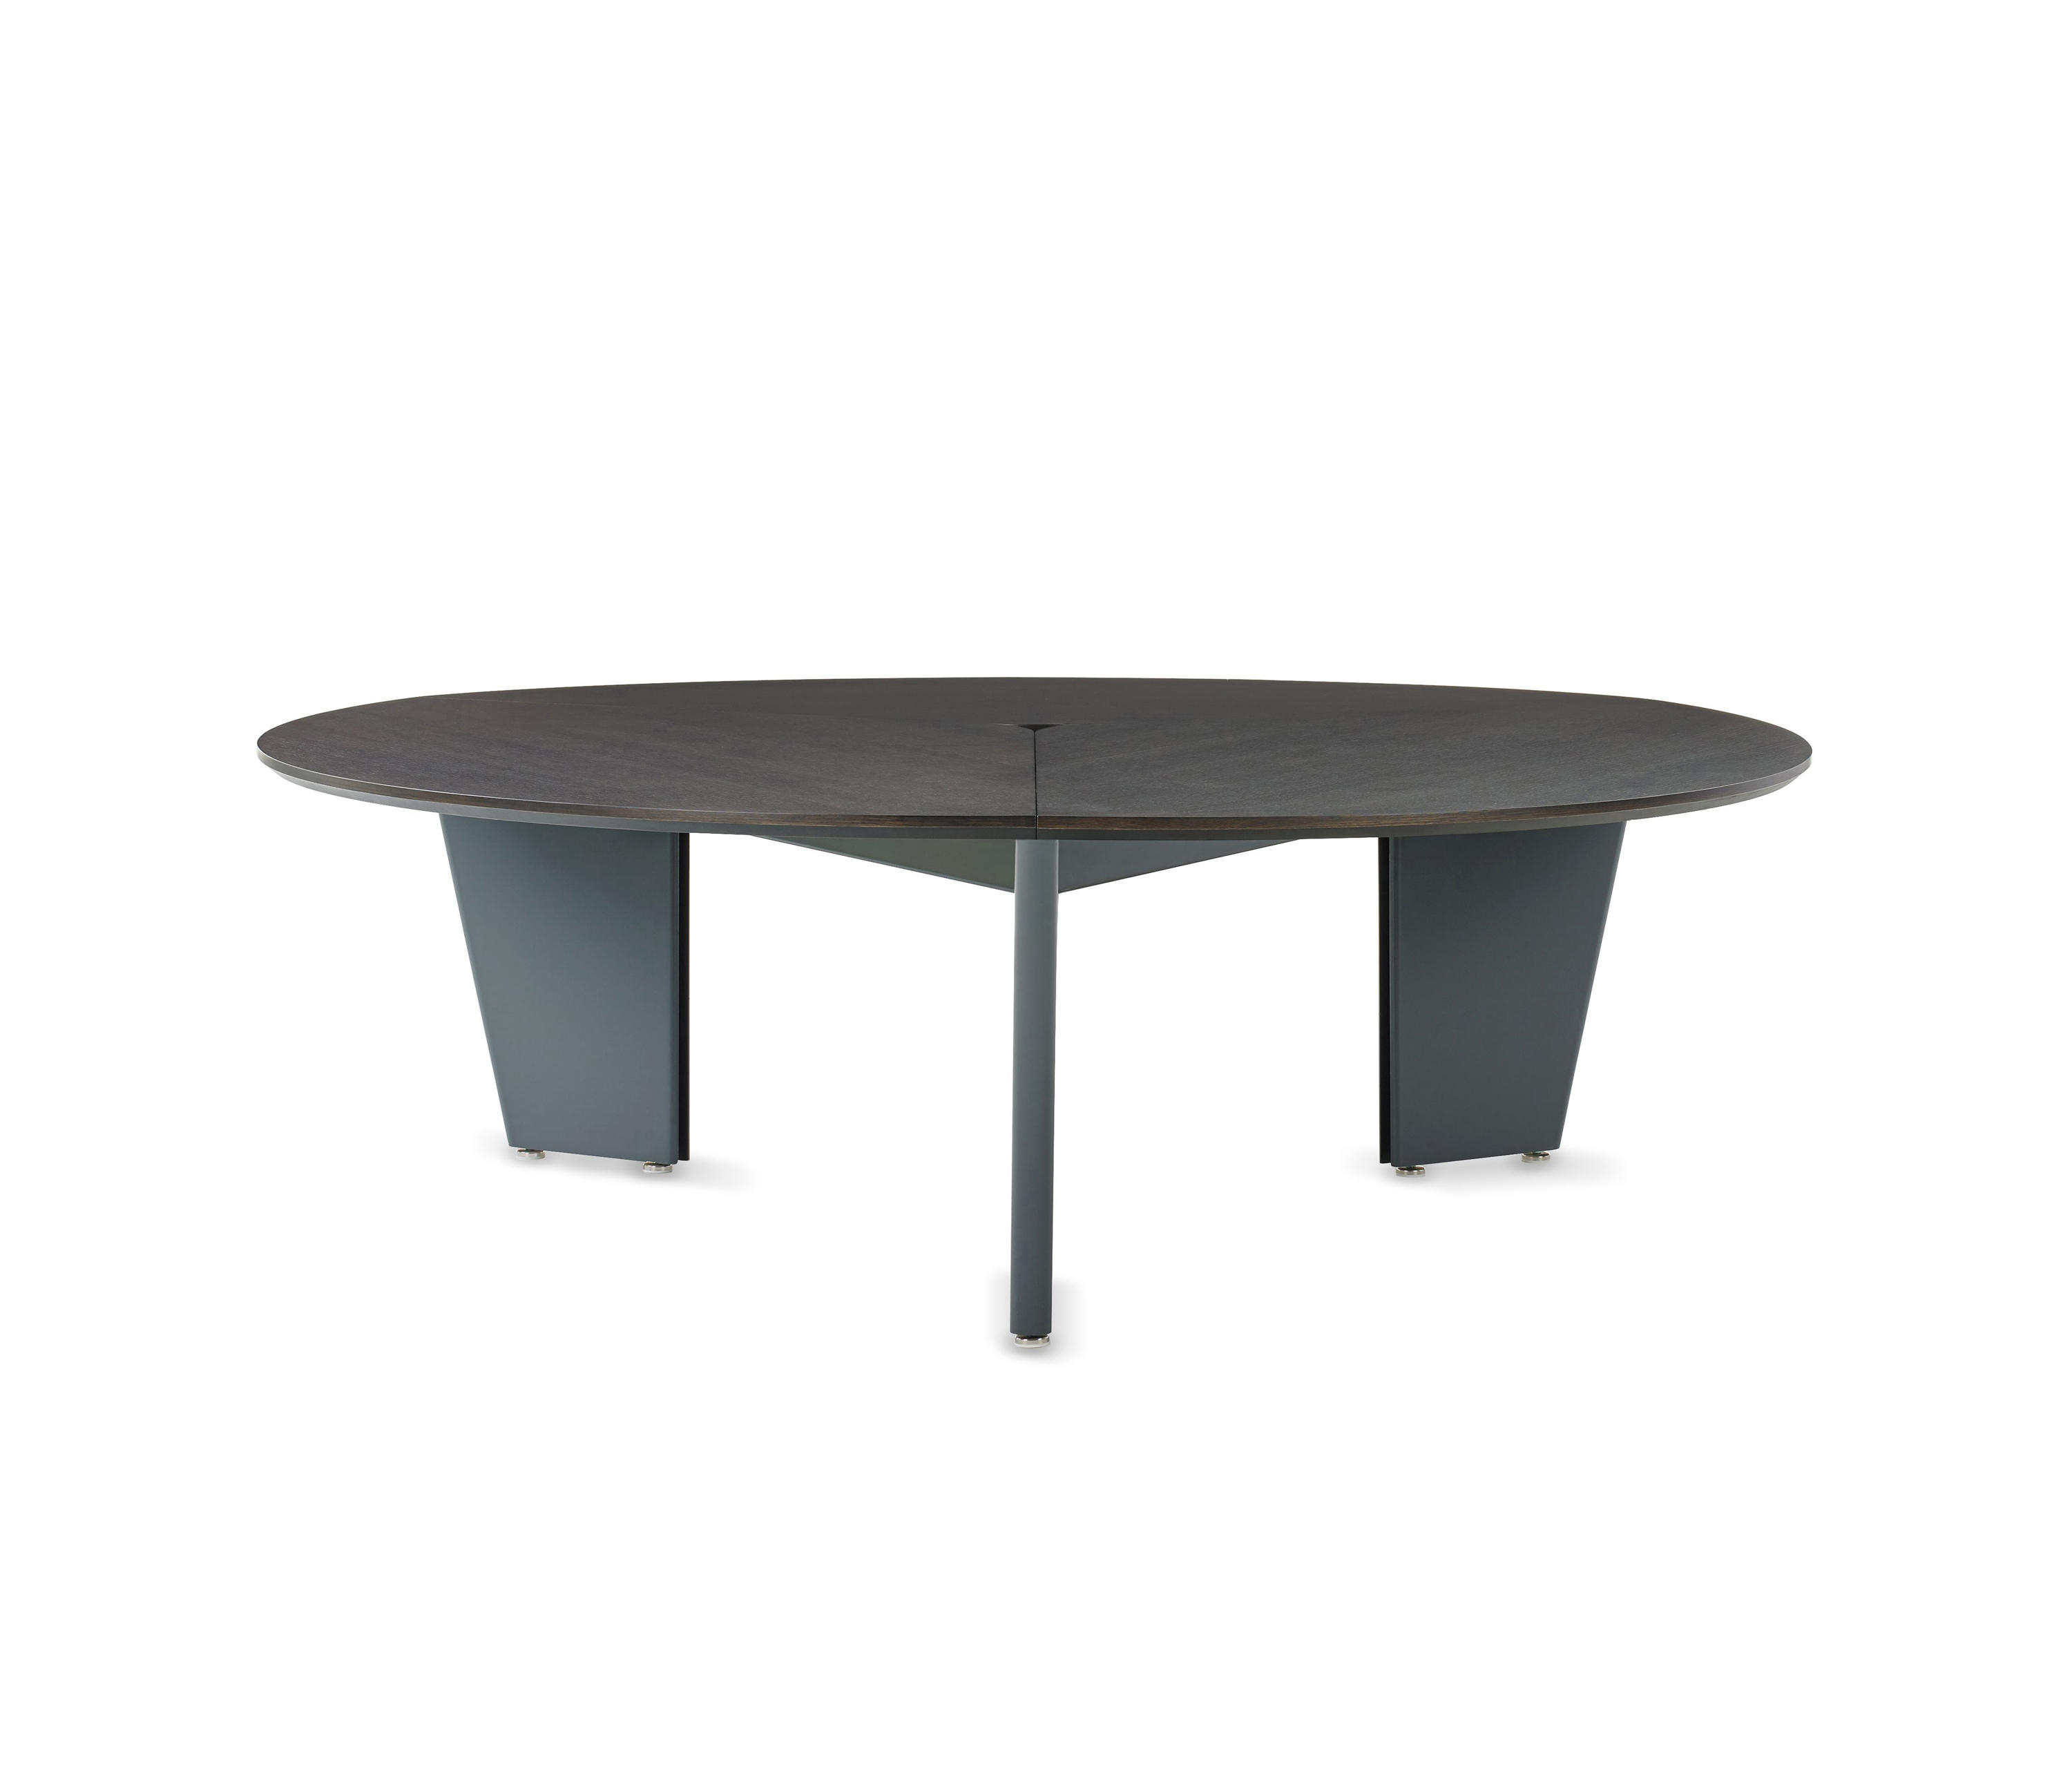 Cavu Round Table By Studio TK | Contract Tables ...